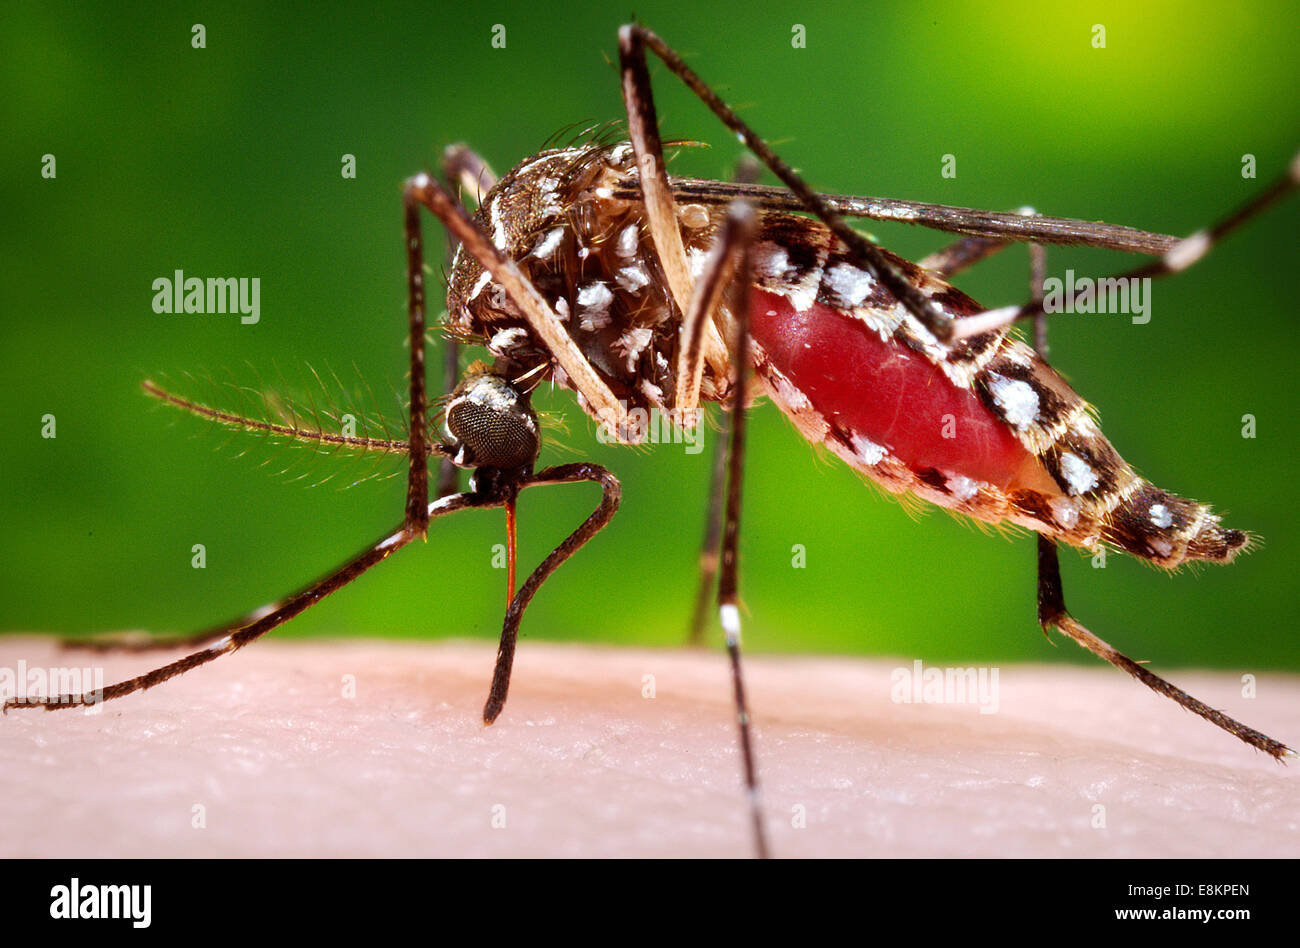 This photograph depicted female Aedes aegypti mosquito while she was in process of acquiring blood meal from her - Stock Image